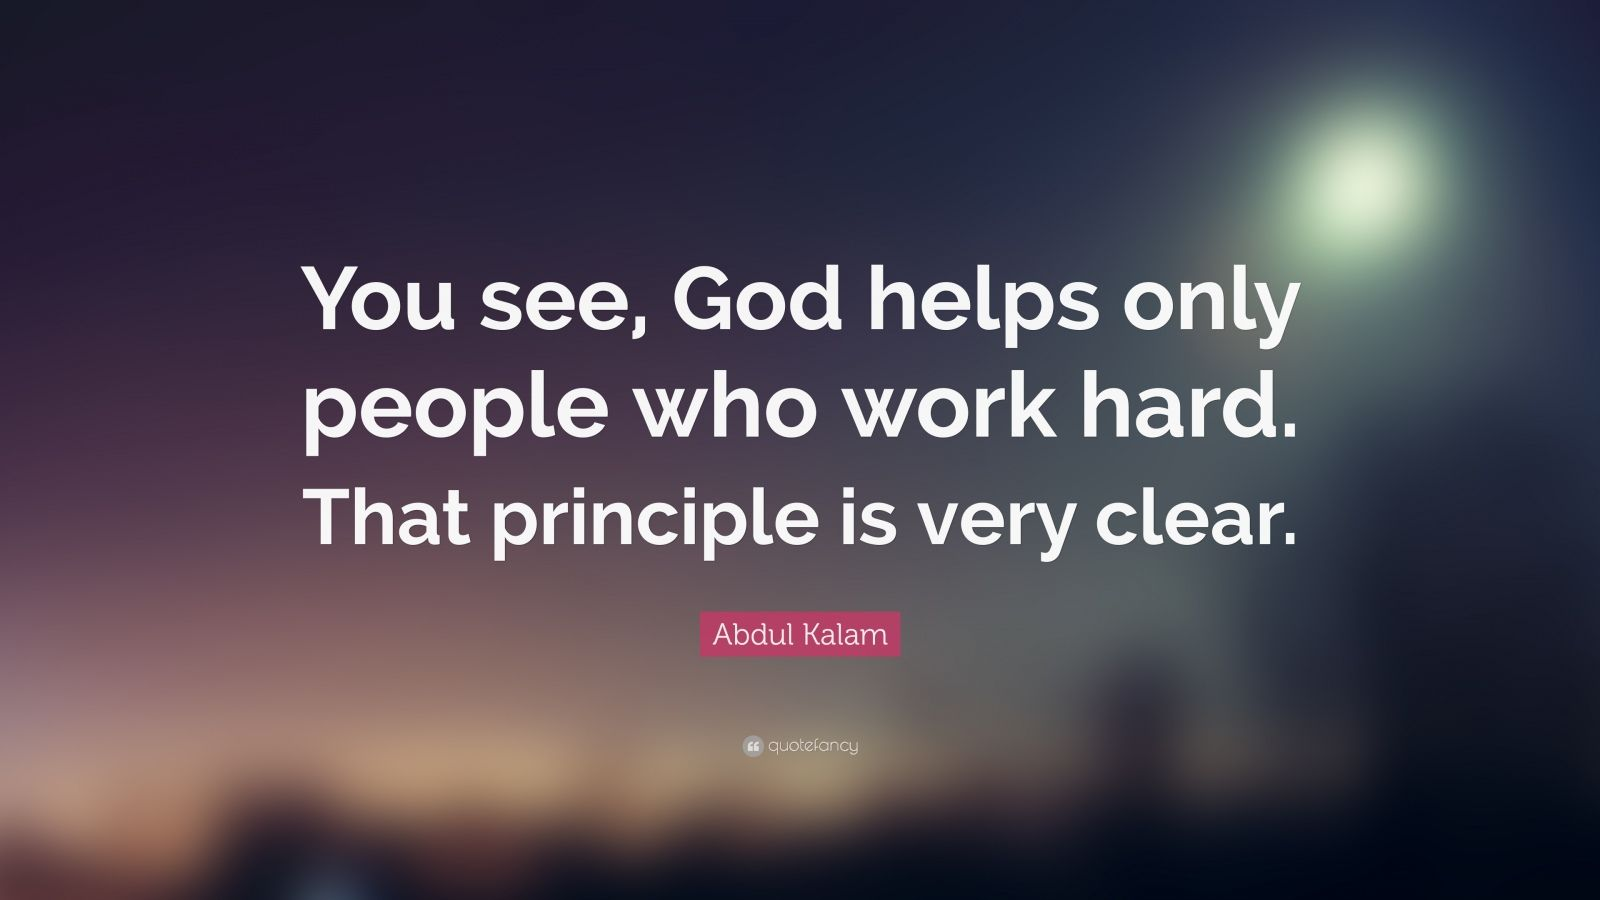 """Abdul Kalam Quote: """"You see, God helps only people who work hard. That principle is very clear."""""""